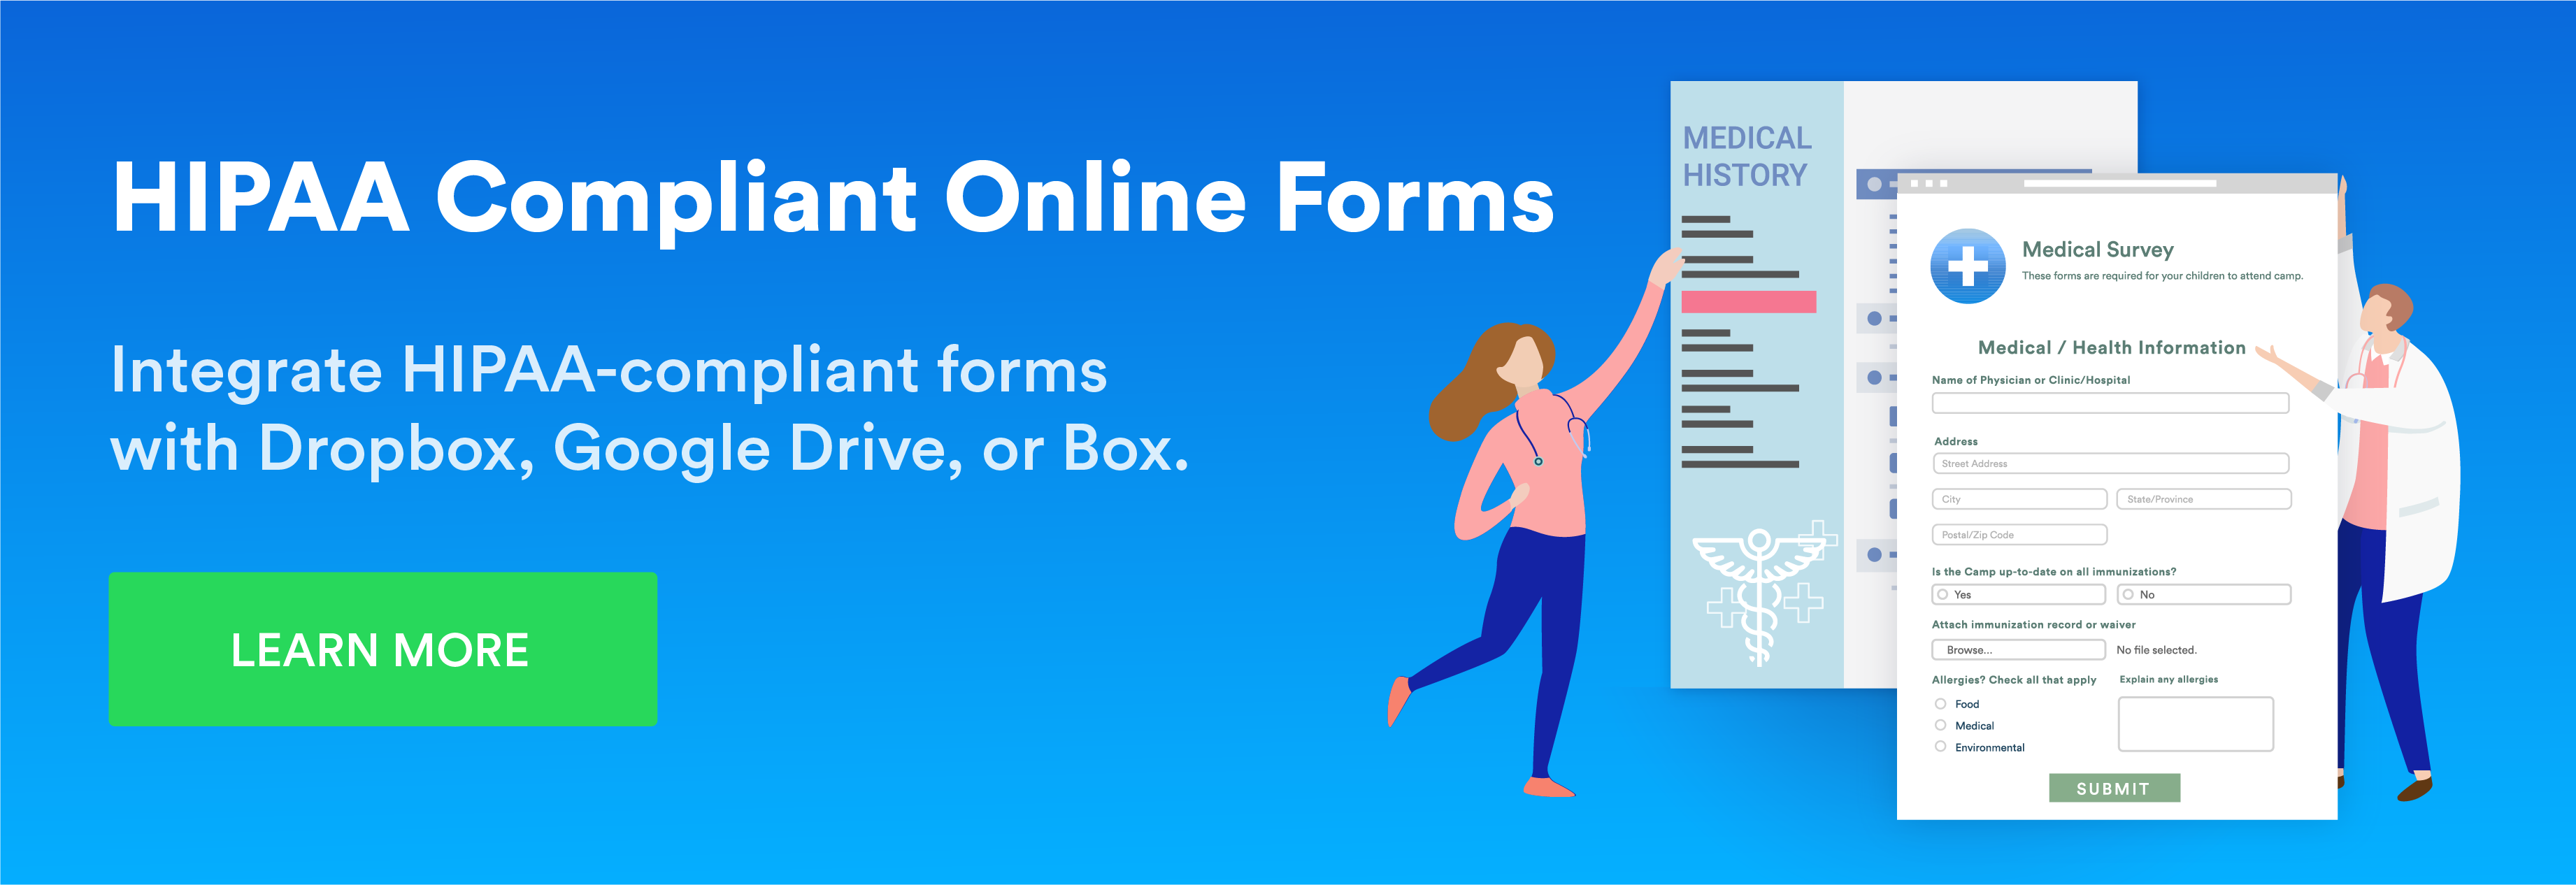 Integrate HIPAA-compliant forms with Dropbox, Google Drive, or Box